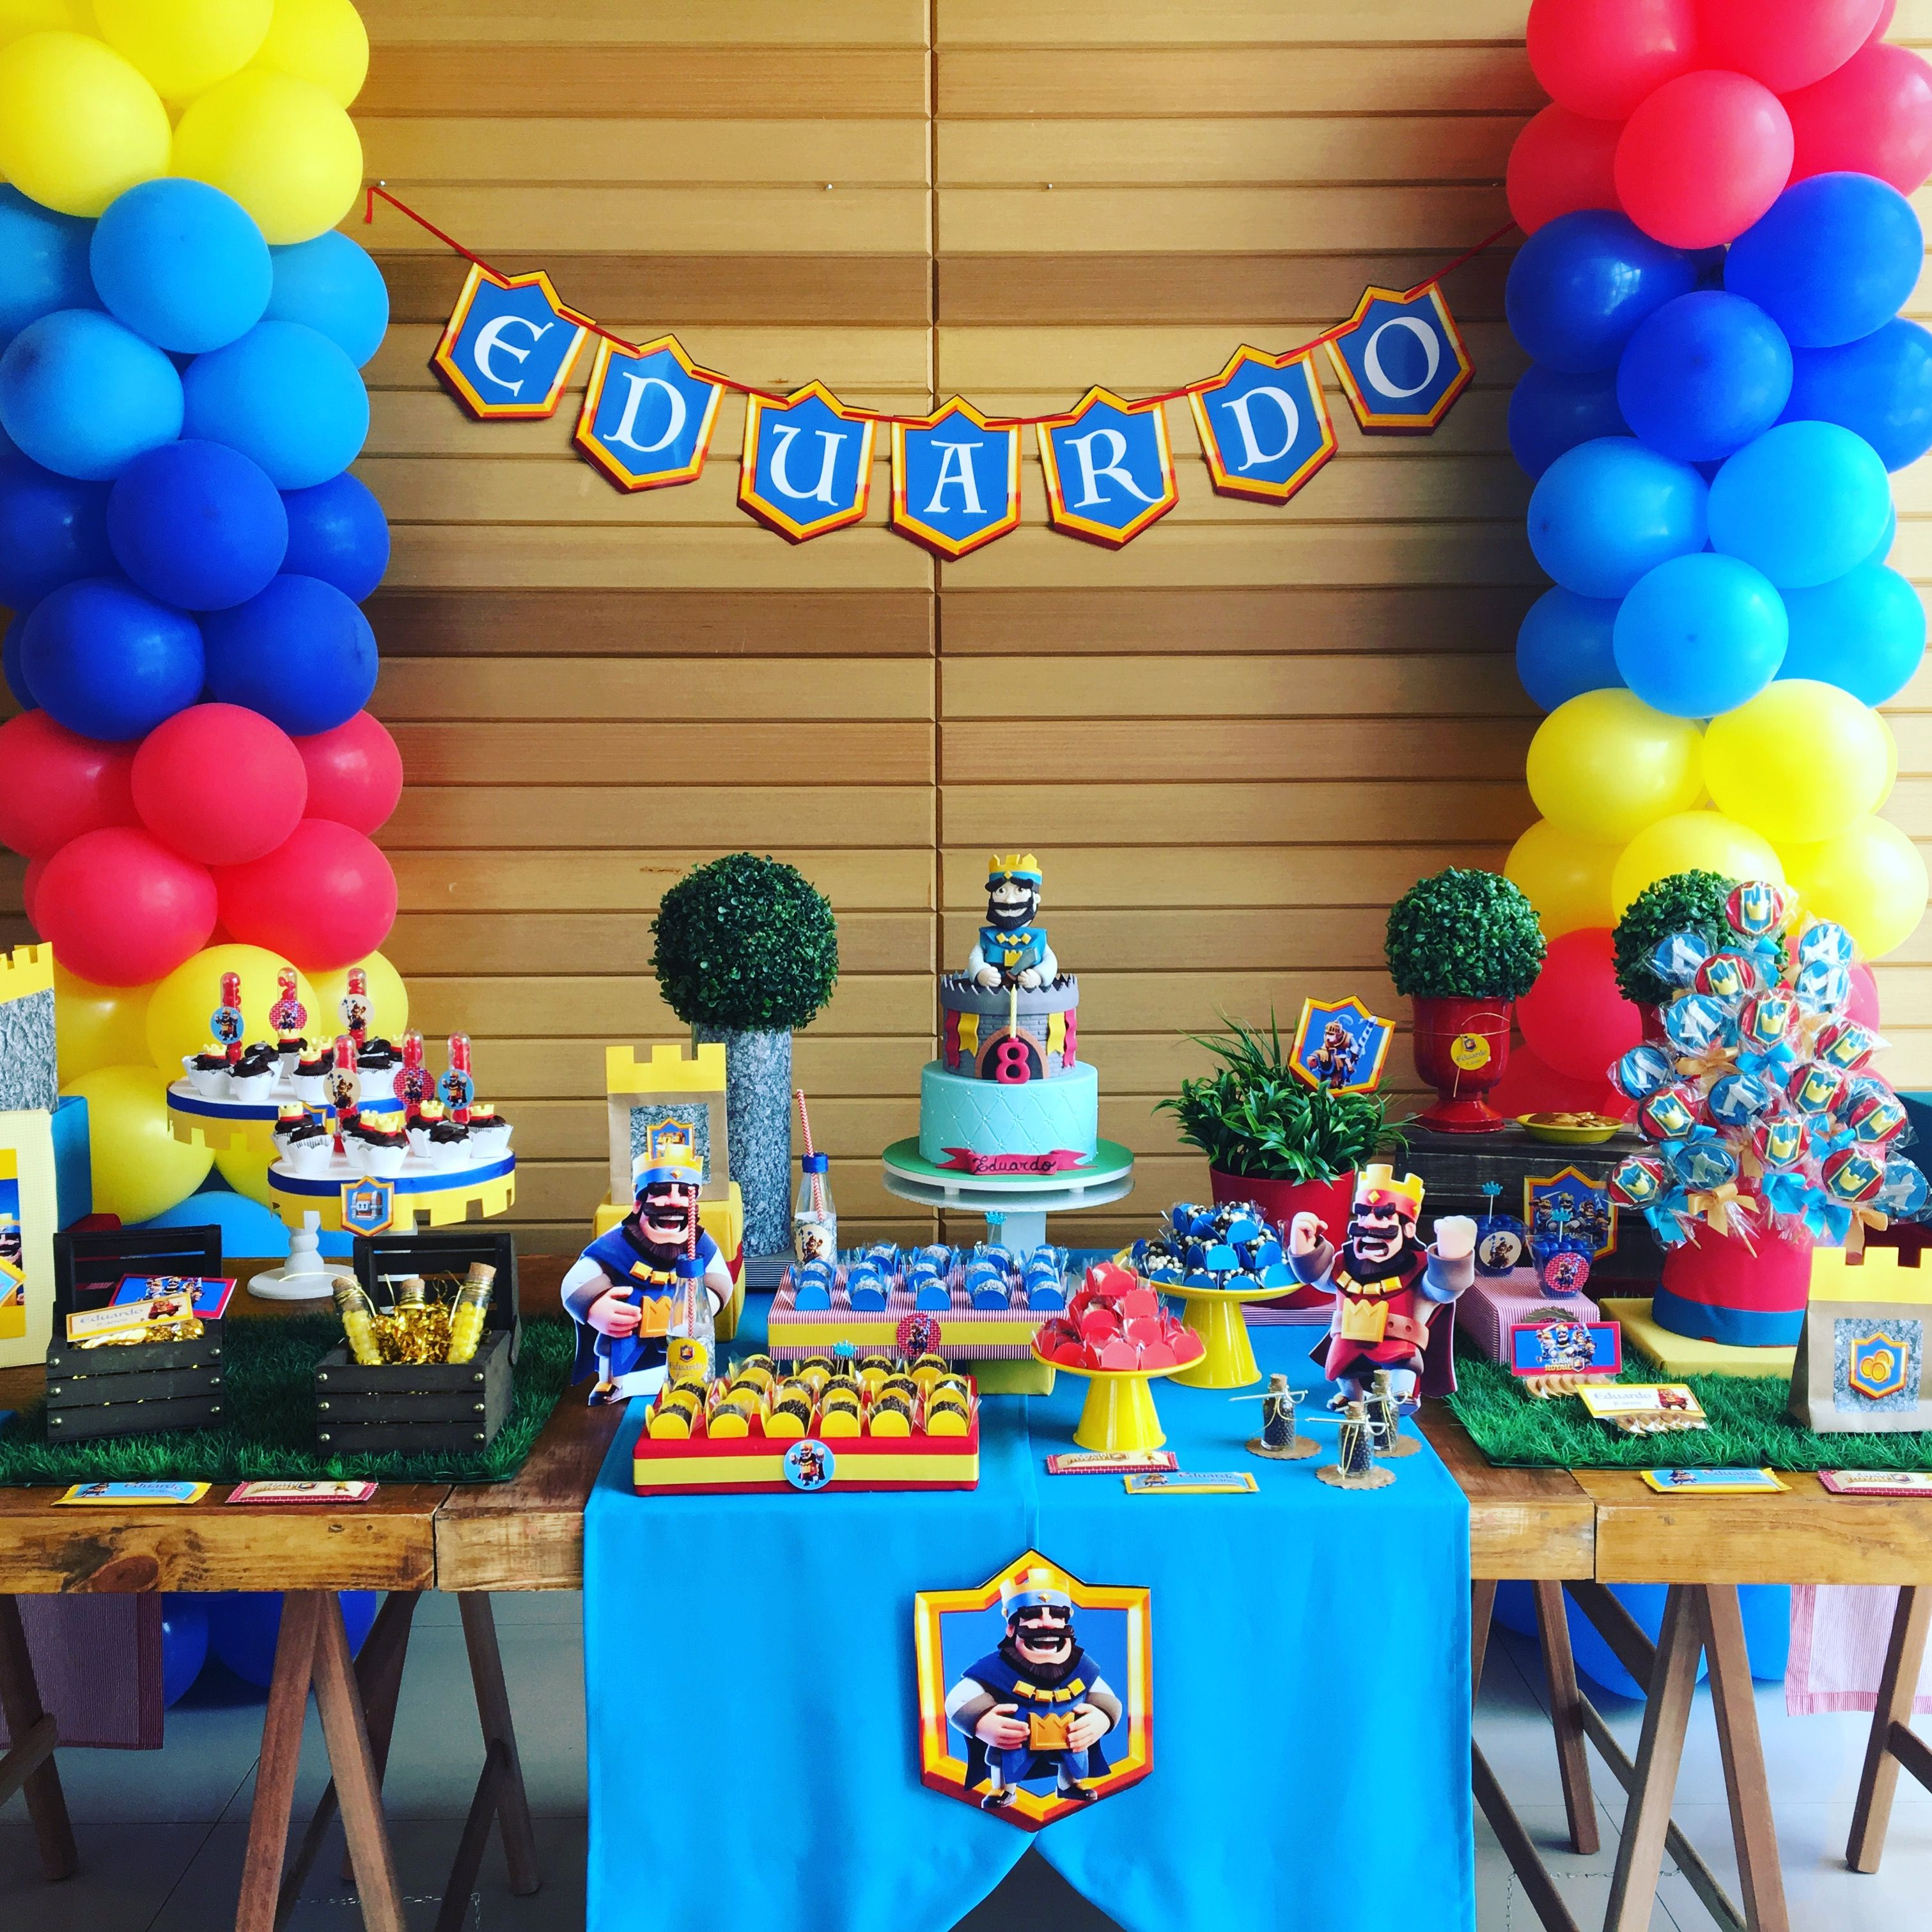 Clash Royale Juego De Mesa Cintia Cinrenzito On Pinterest